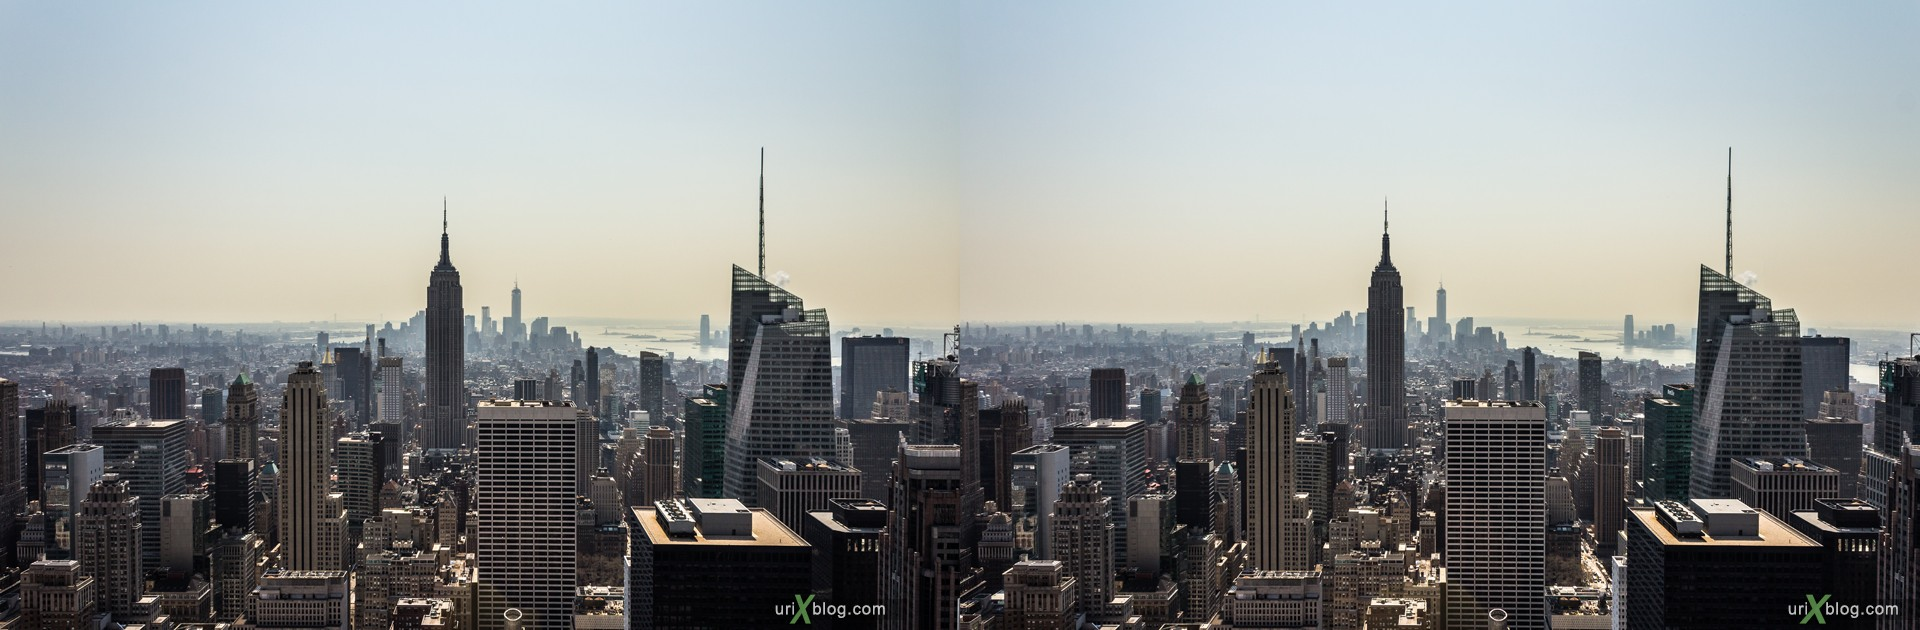 2013, NYC, New York, Lower Manhattan, Top of the Rock Observation Deck, Rockefeller Canter, view from the top, city, building, skyscraper, panorama, 3D, stereo pair, cross-eyed, crossview, cross view stereo pair, stereoscopic